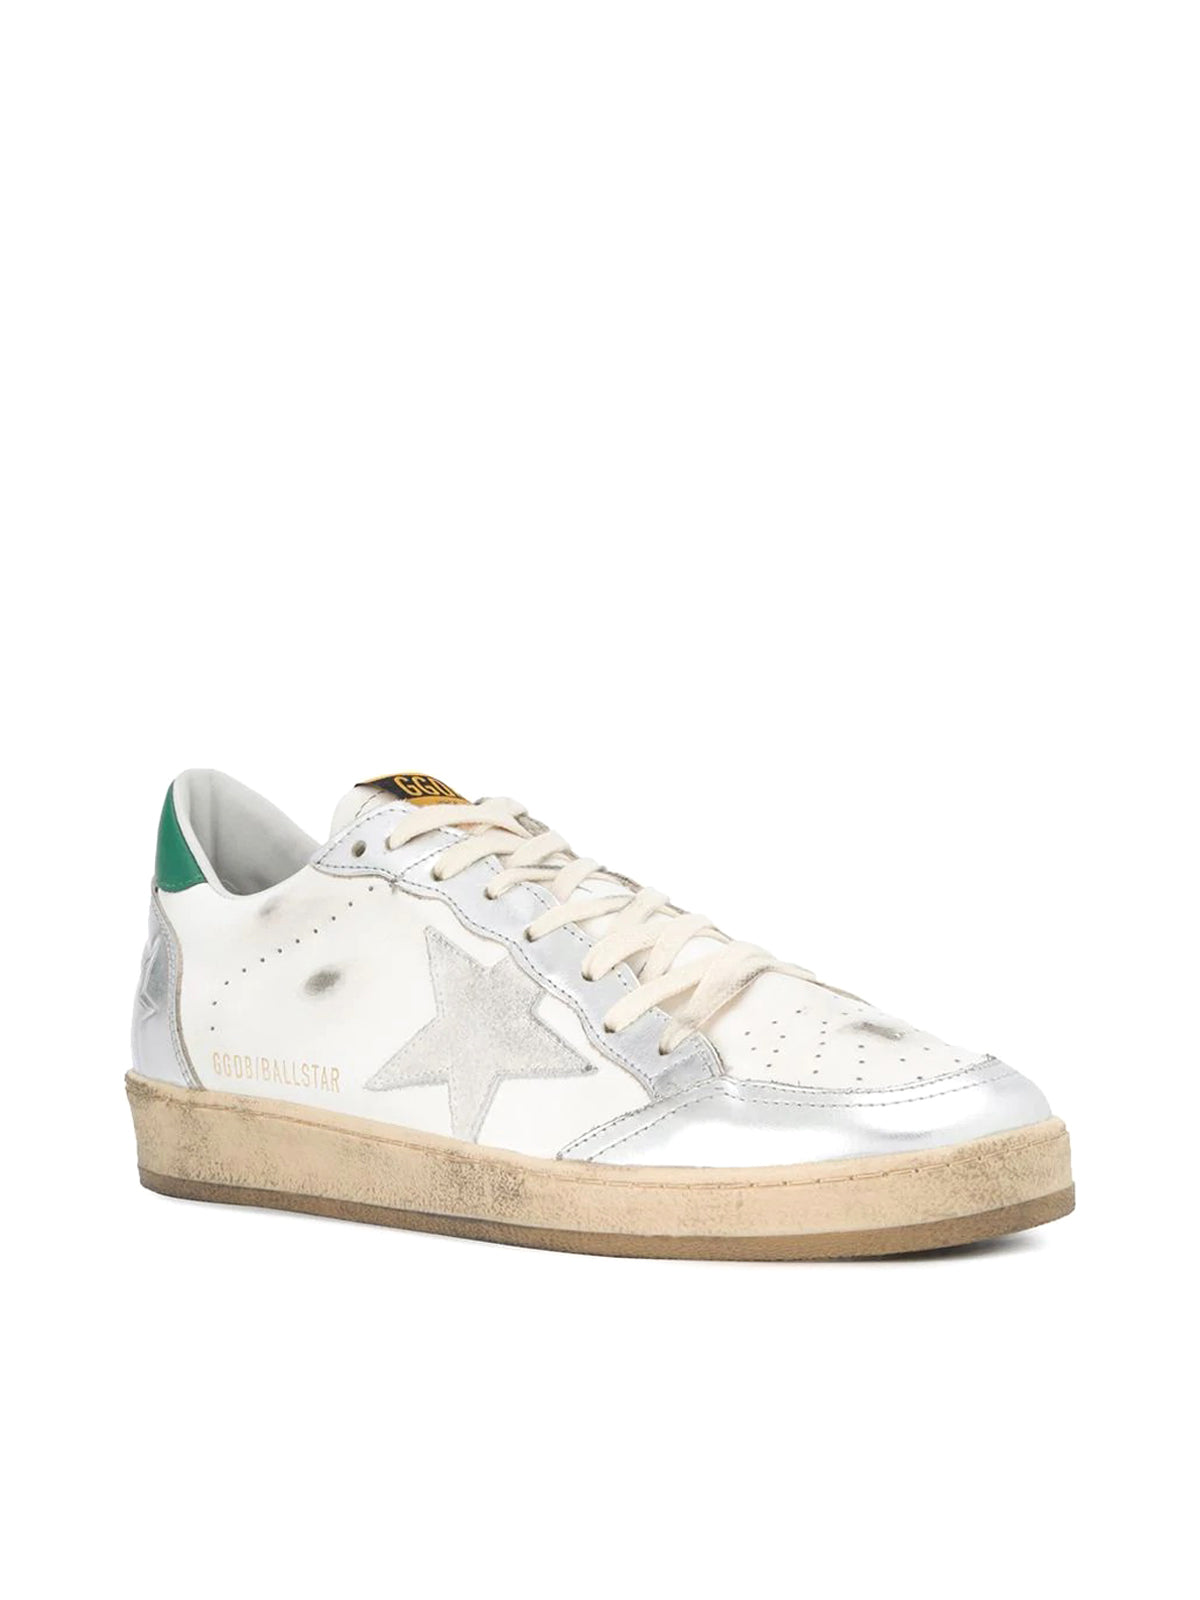 Ball Star low-top sneakers